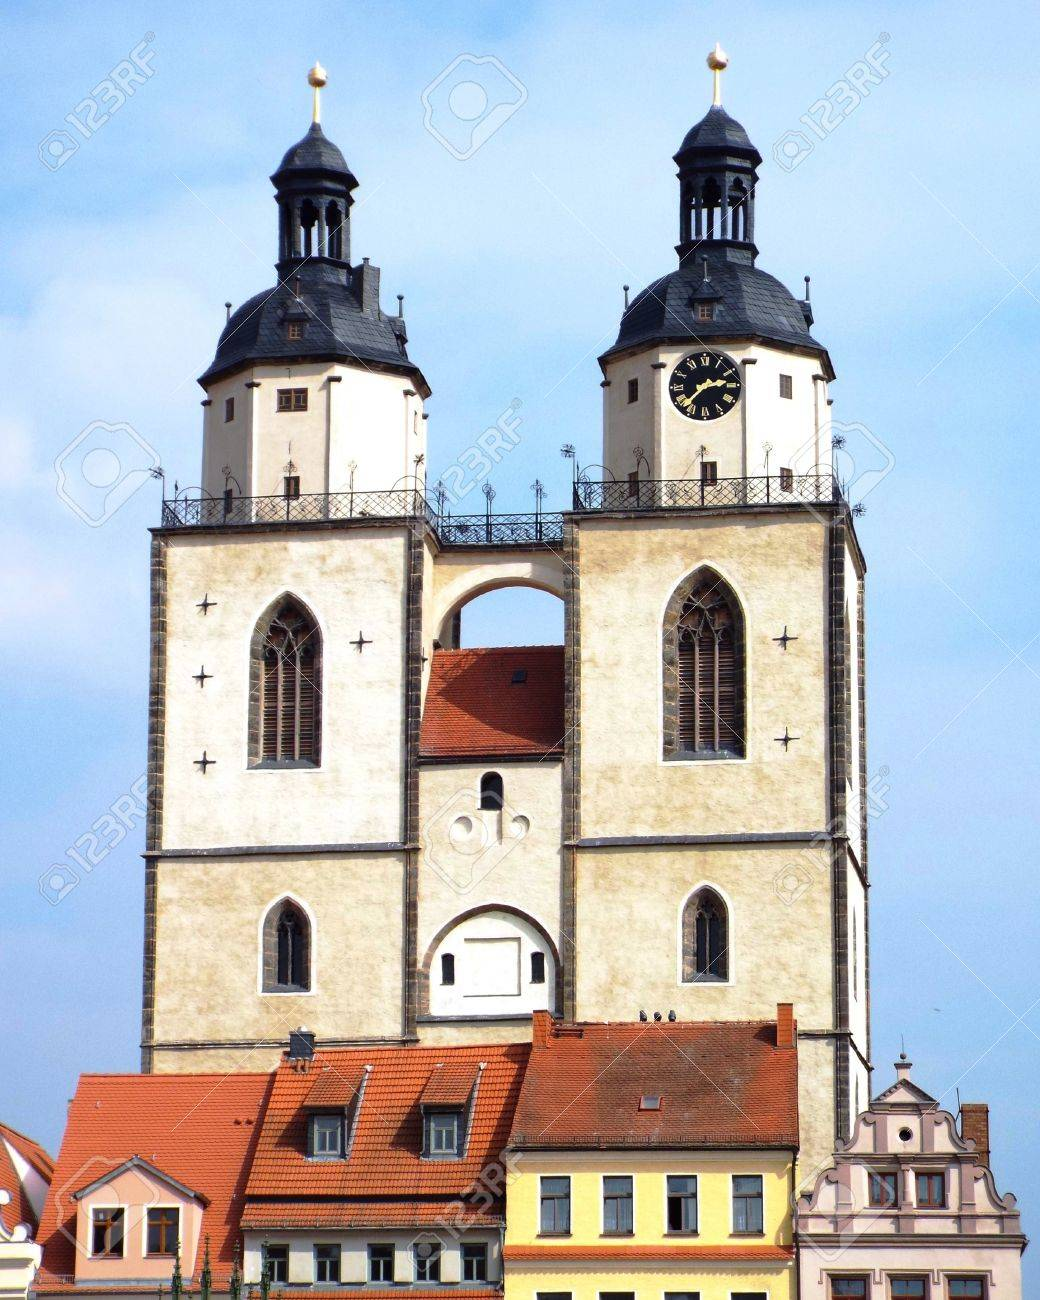 Towers of St. Mary's Church, Wittenberg, Germany 04.12.2016 - At the door of the Castle Church in Wittenberg reformer Martin Luther nailed his 95 theses. By Luther and Melanchthon, the Wittenberg wurde the center of the Reformation. - 69414851